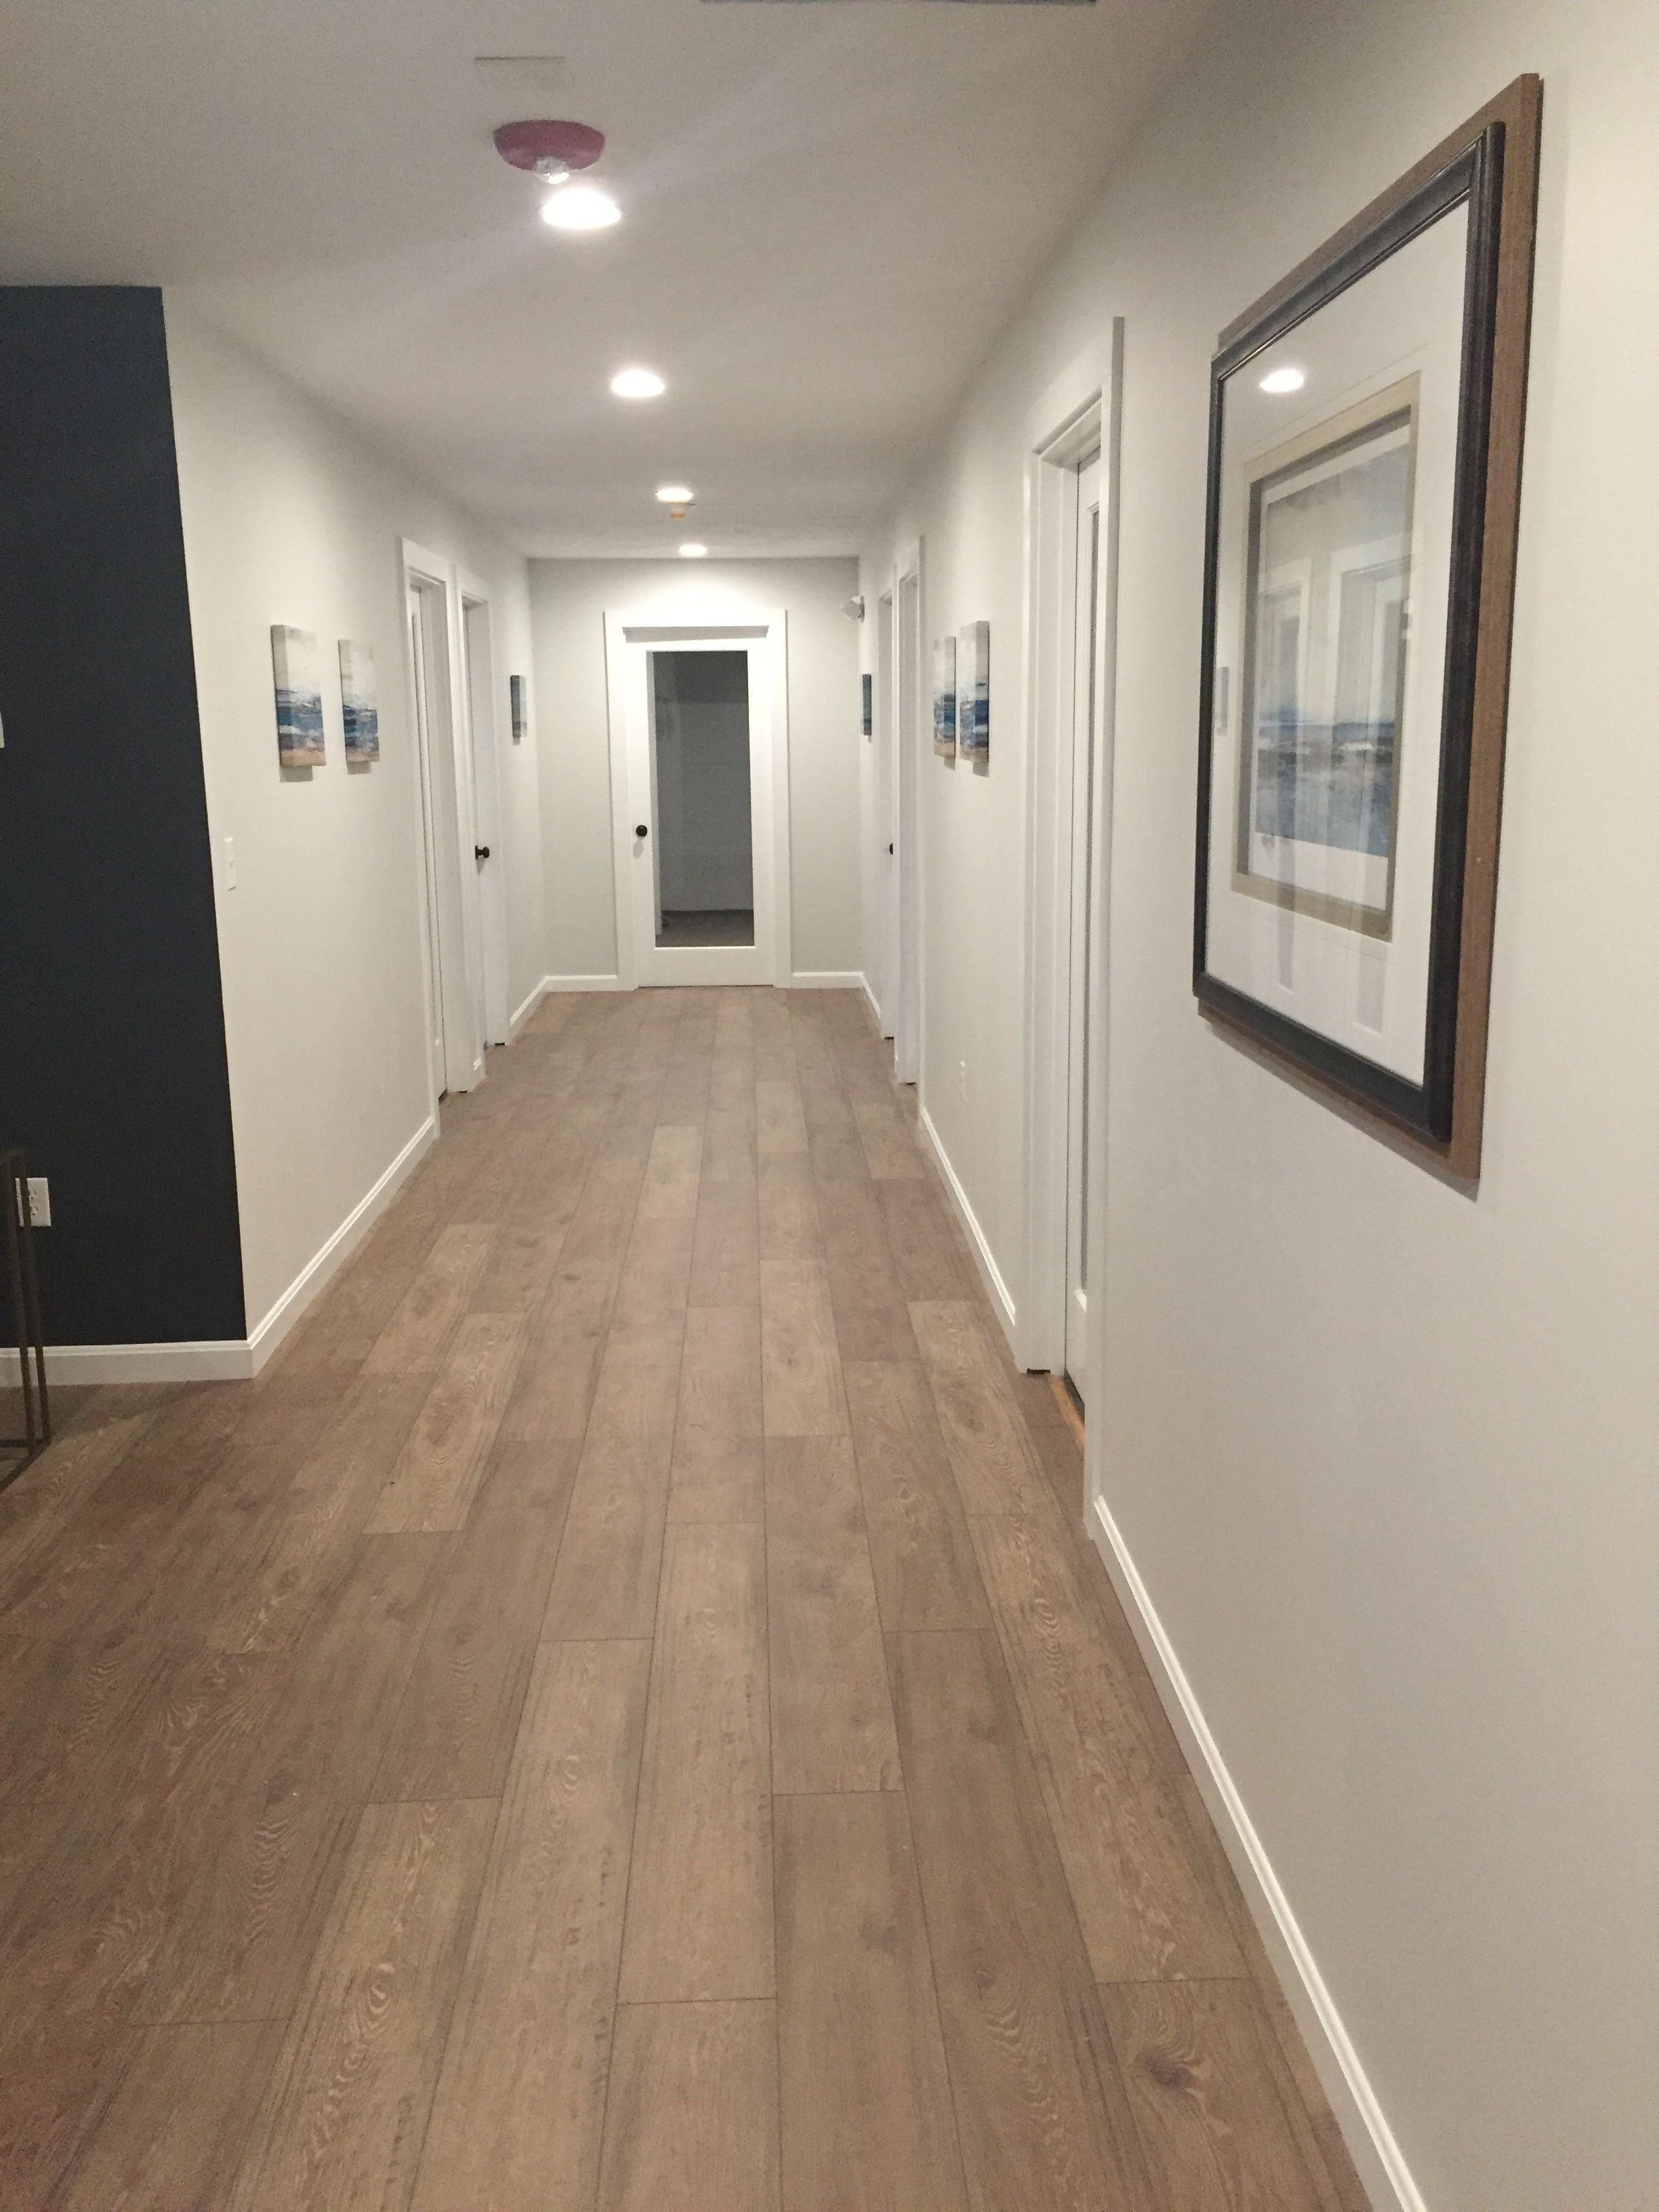 Office hallway benjamin moore paperwhite home decor colors in 2019 pinterest benjamin for Living room and hallway paint colors